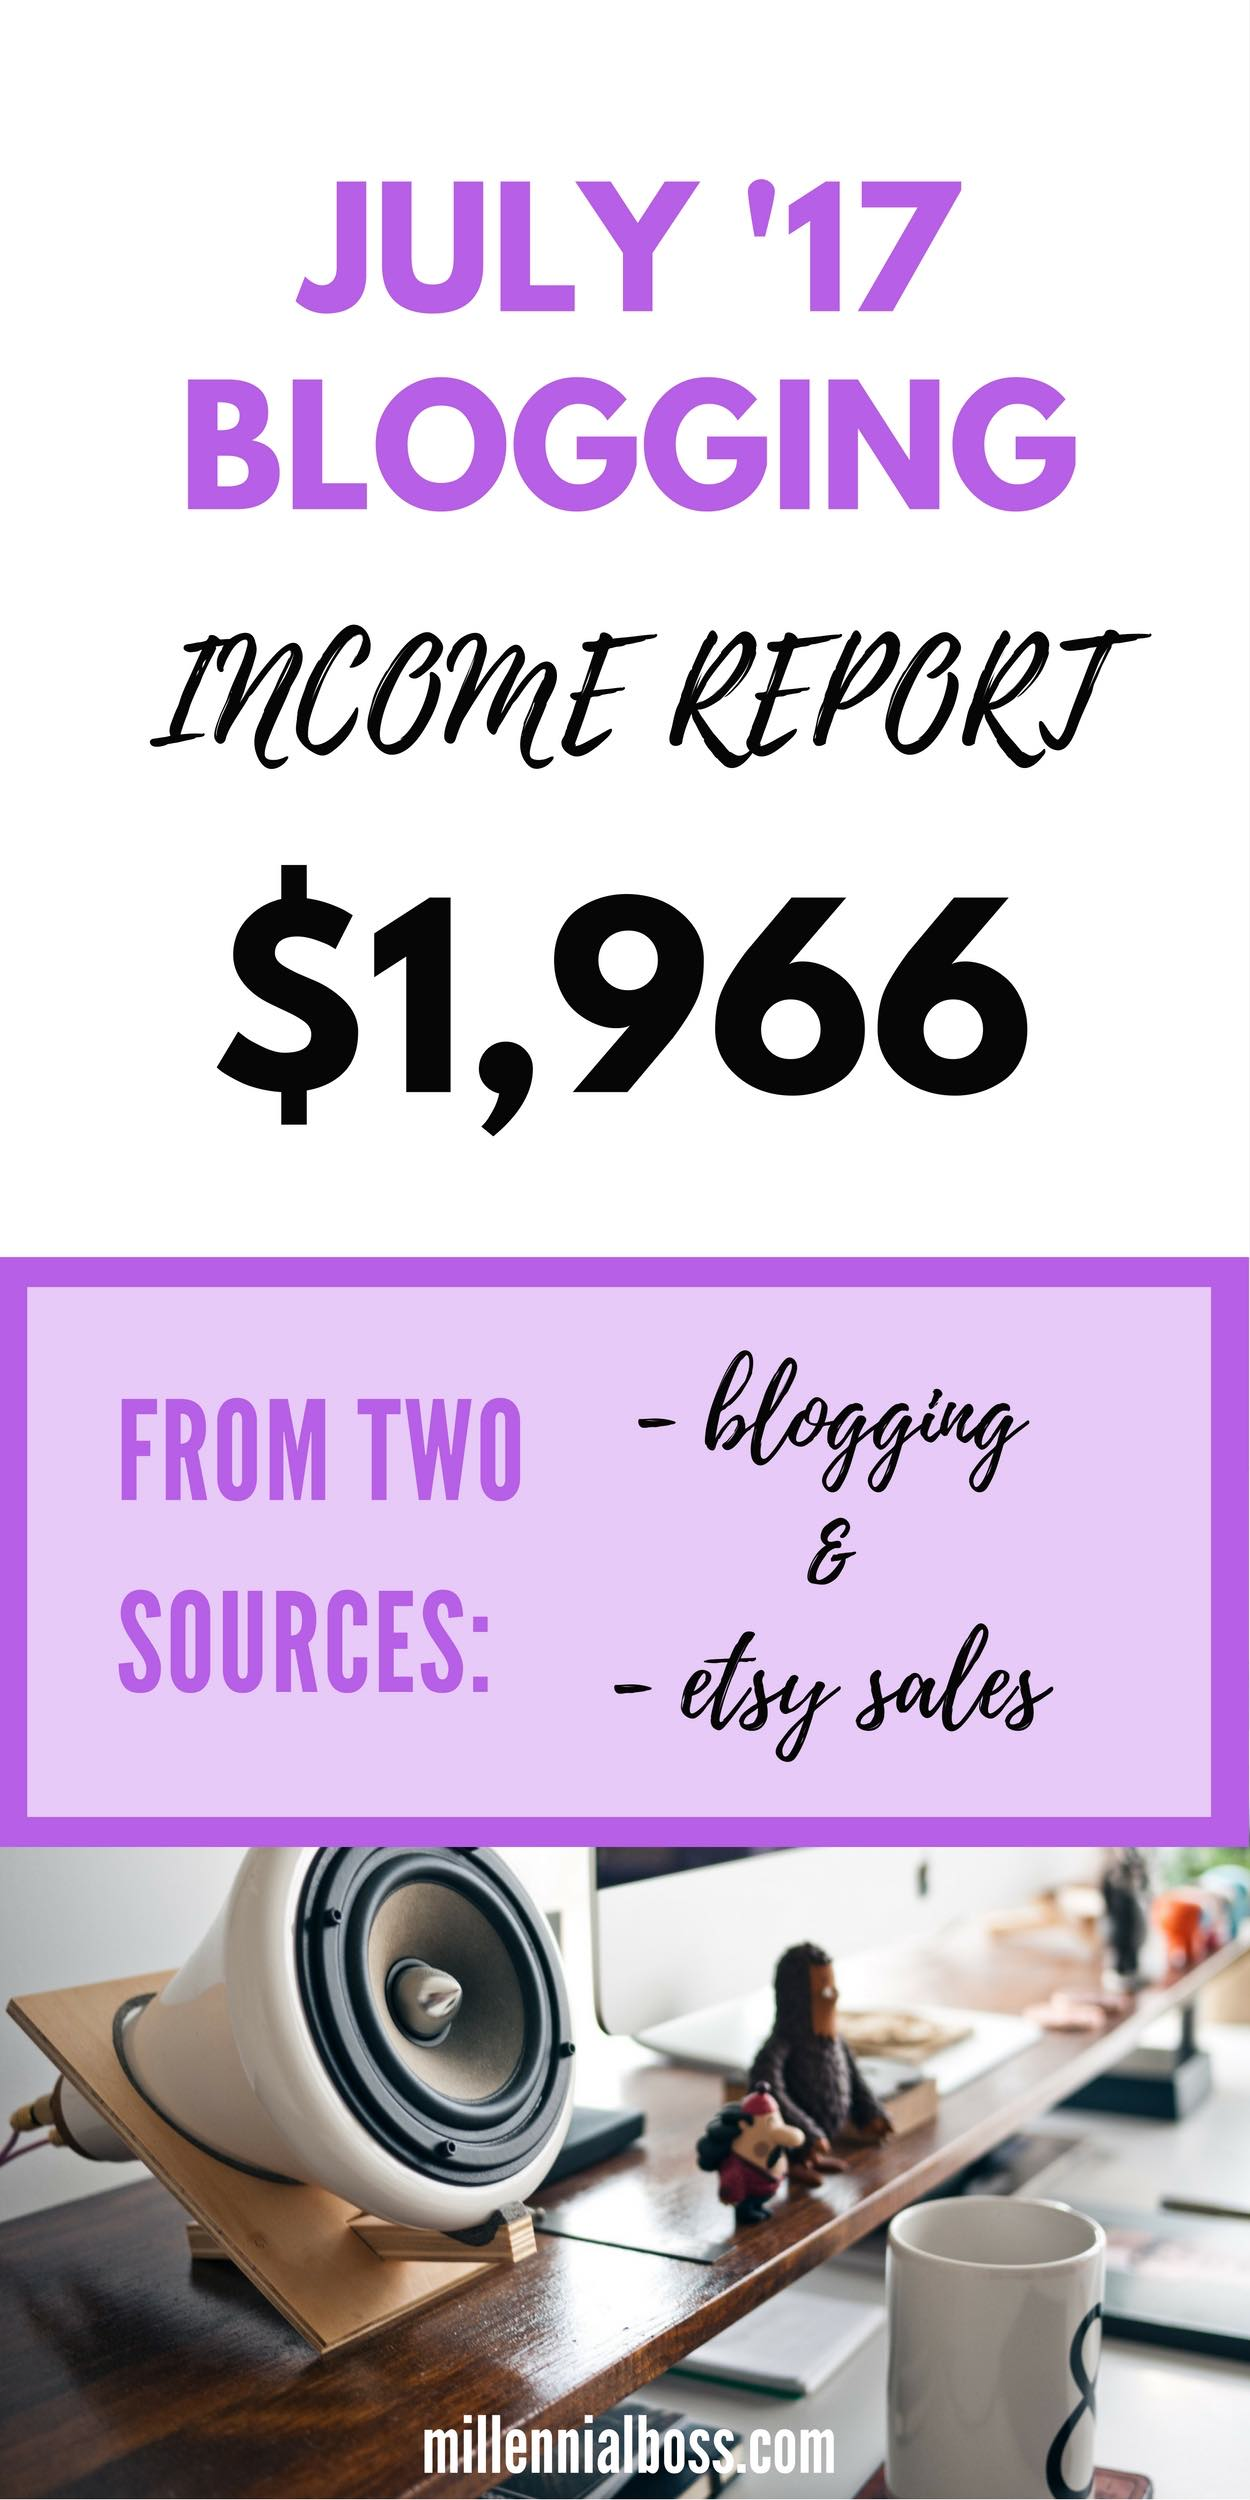 Looking into Work From Home Jobs - I'm trying to break $1,000 in online income next month. Great tips.